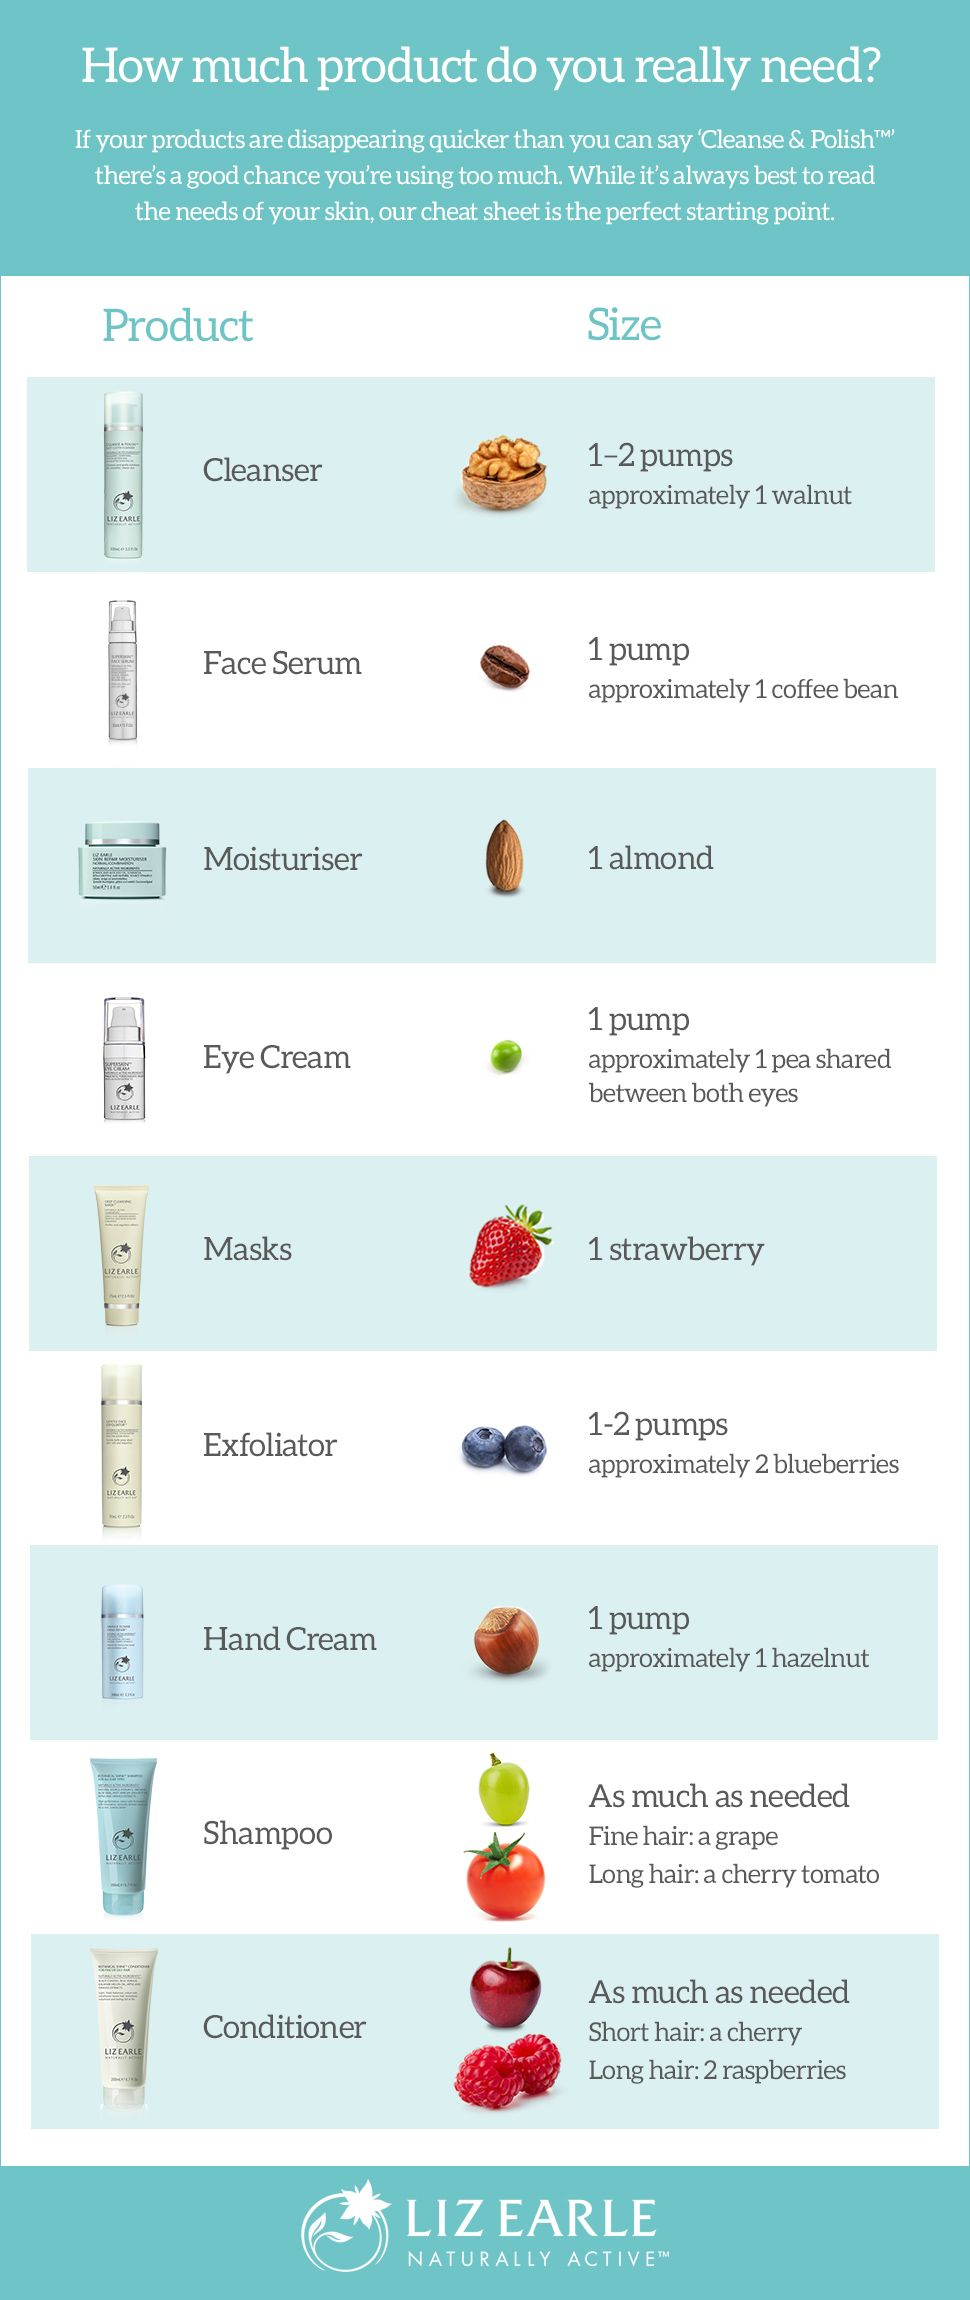 How much product do you really need? If you're products are disappearing quicker than you can say 'Cleanse & Polish', there's a good chance you're using too much. While it's always best to read the needs of your skin, our cheat sheet is the perfect starting point.